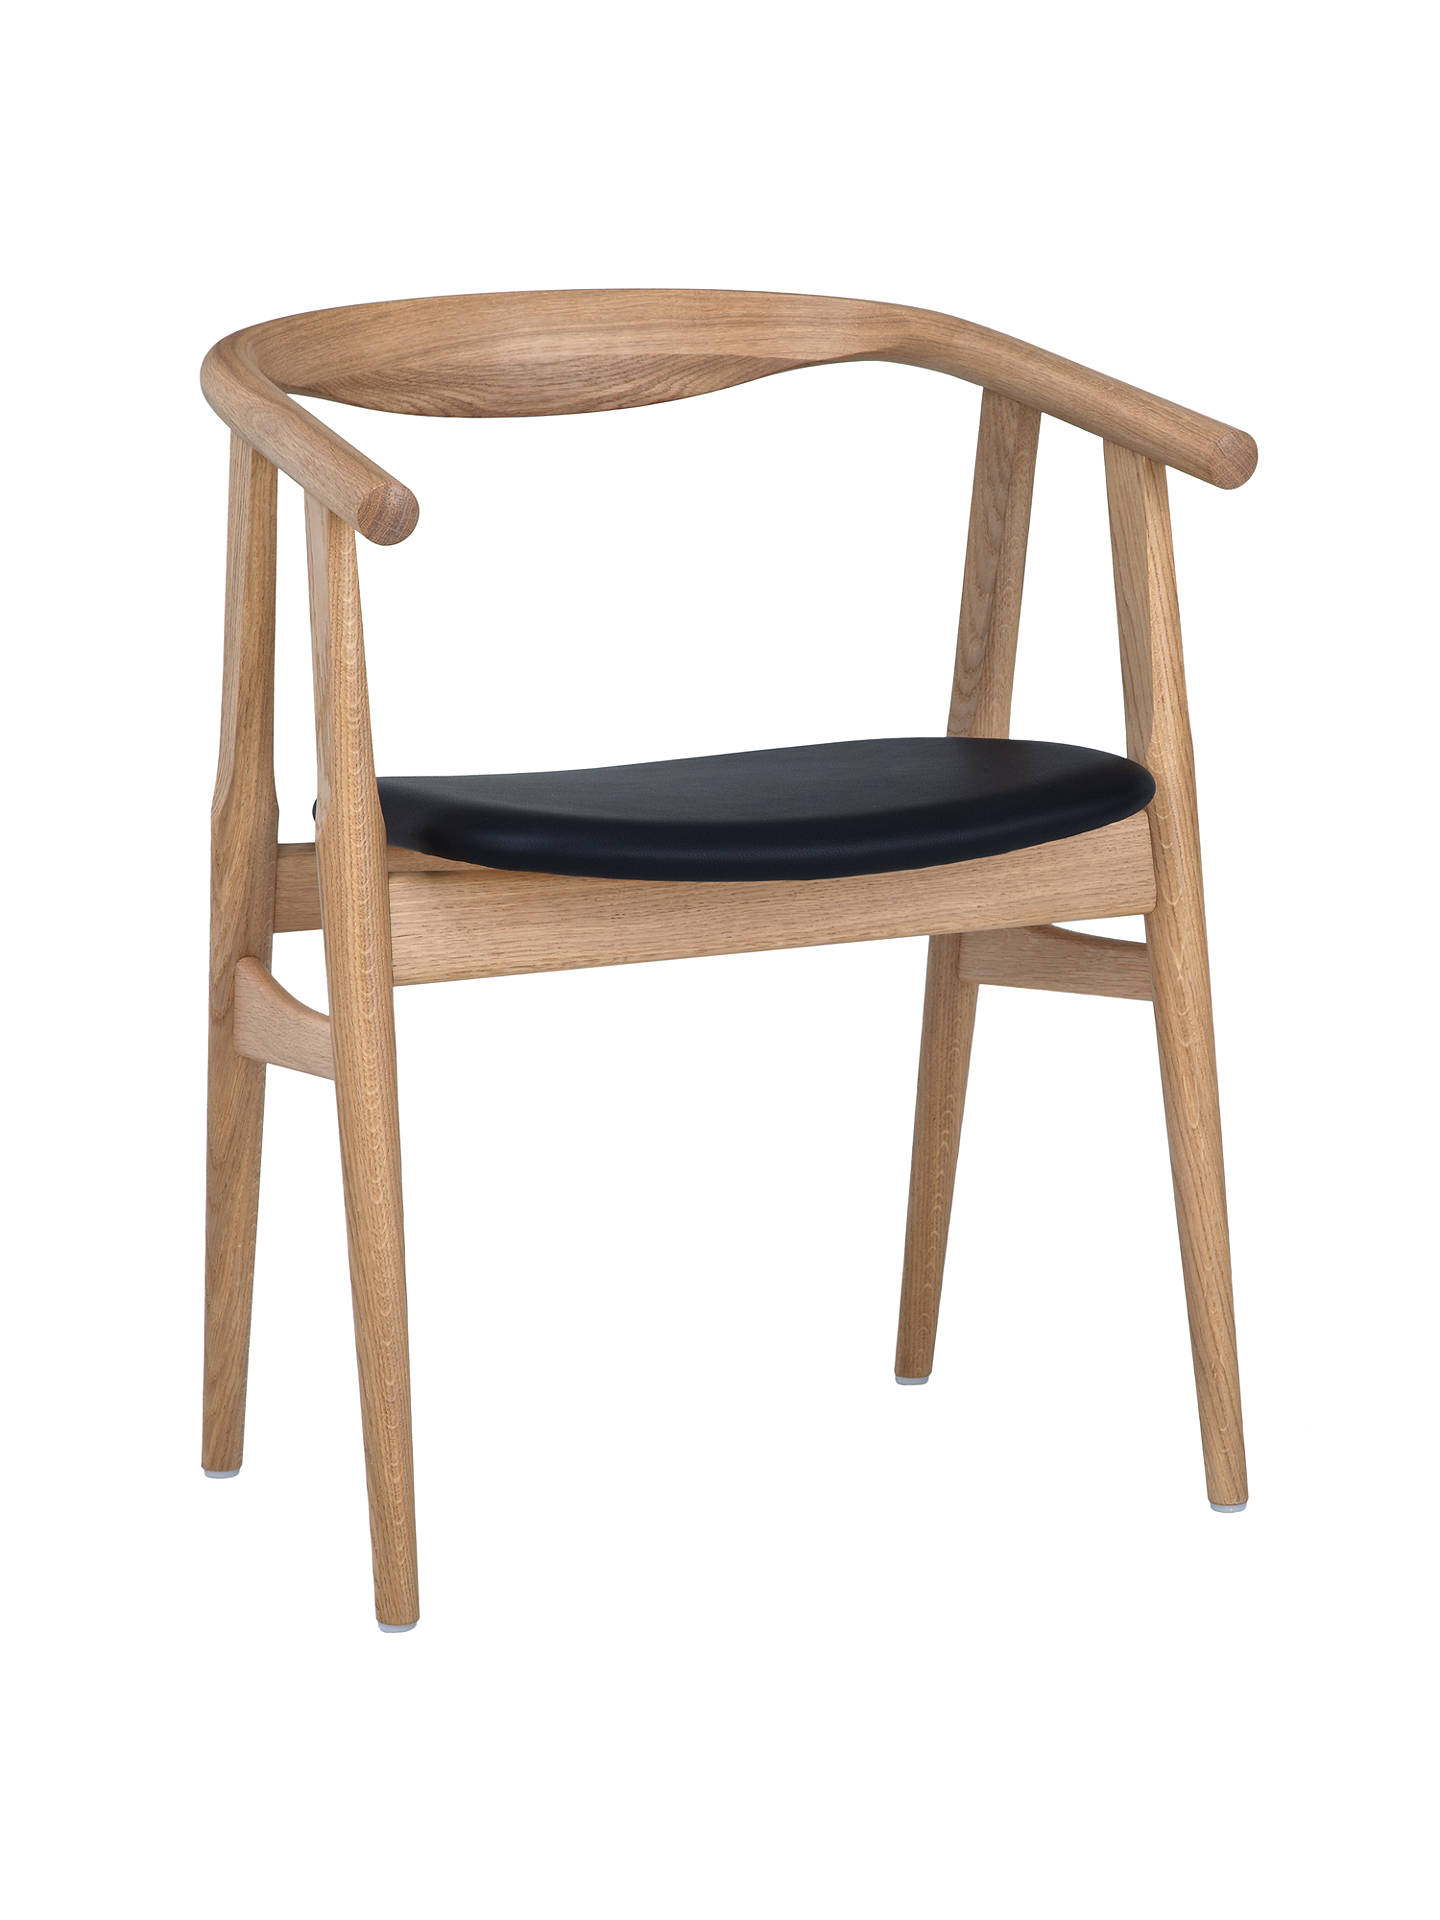 Buyhans j wegner the u 525 chair oak leather online at johnlewis